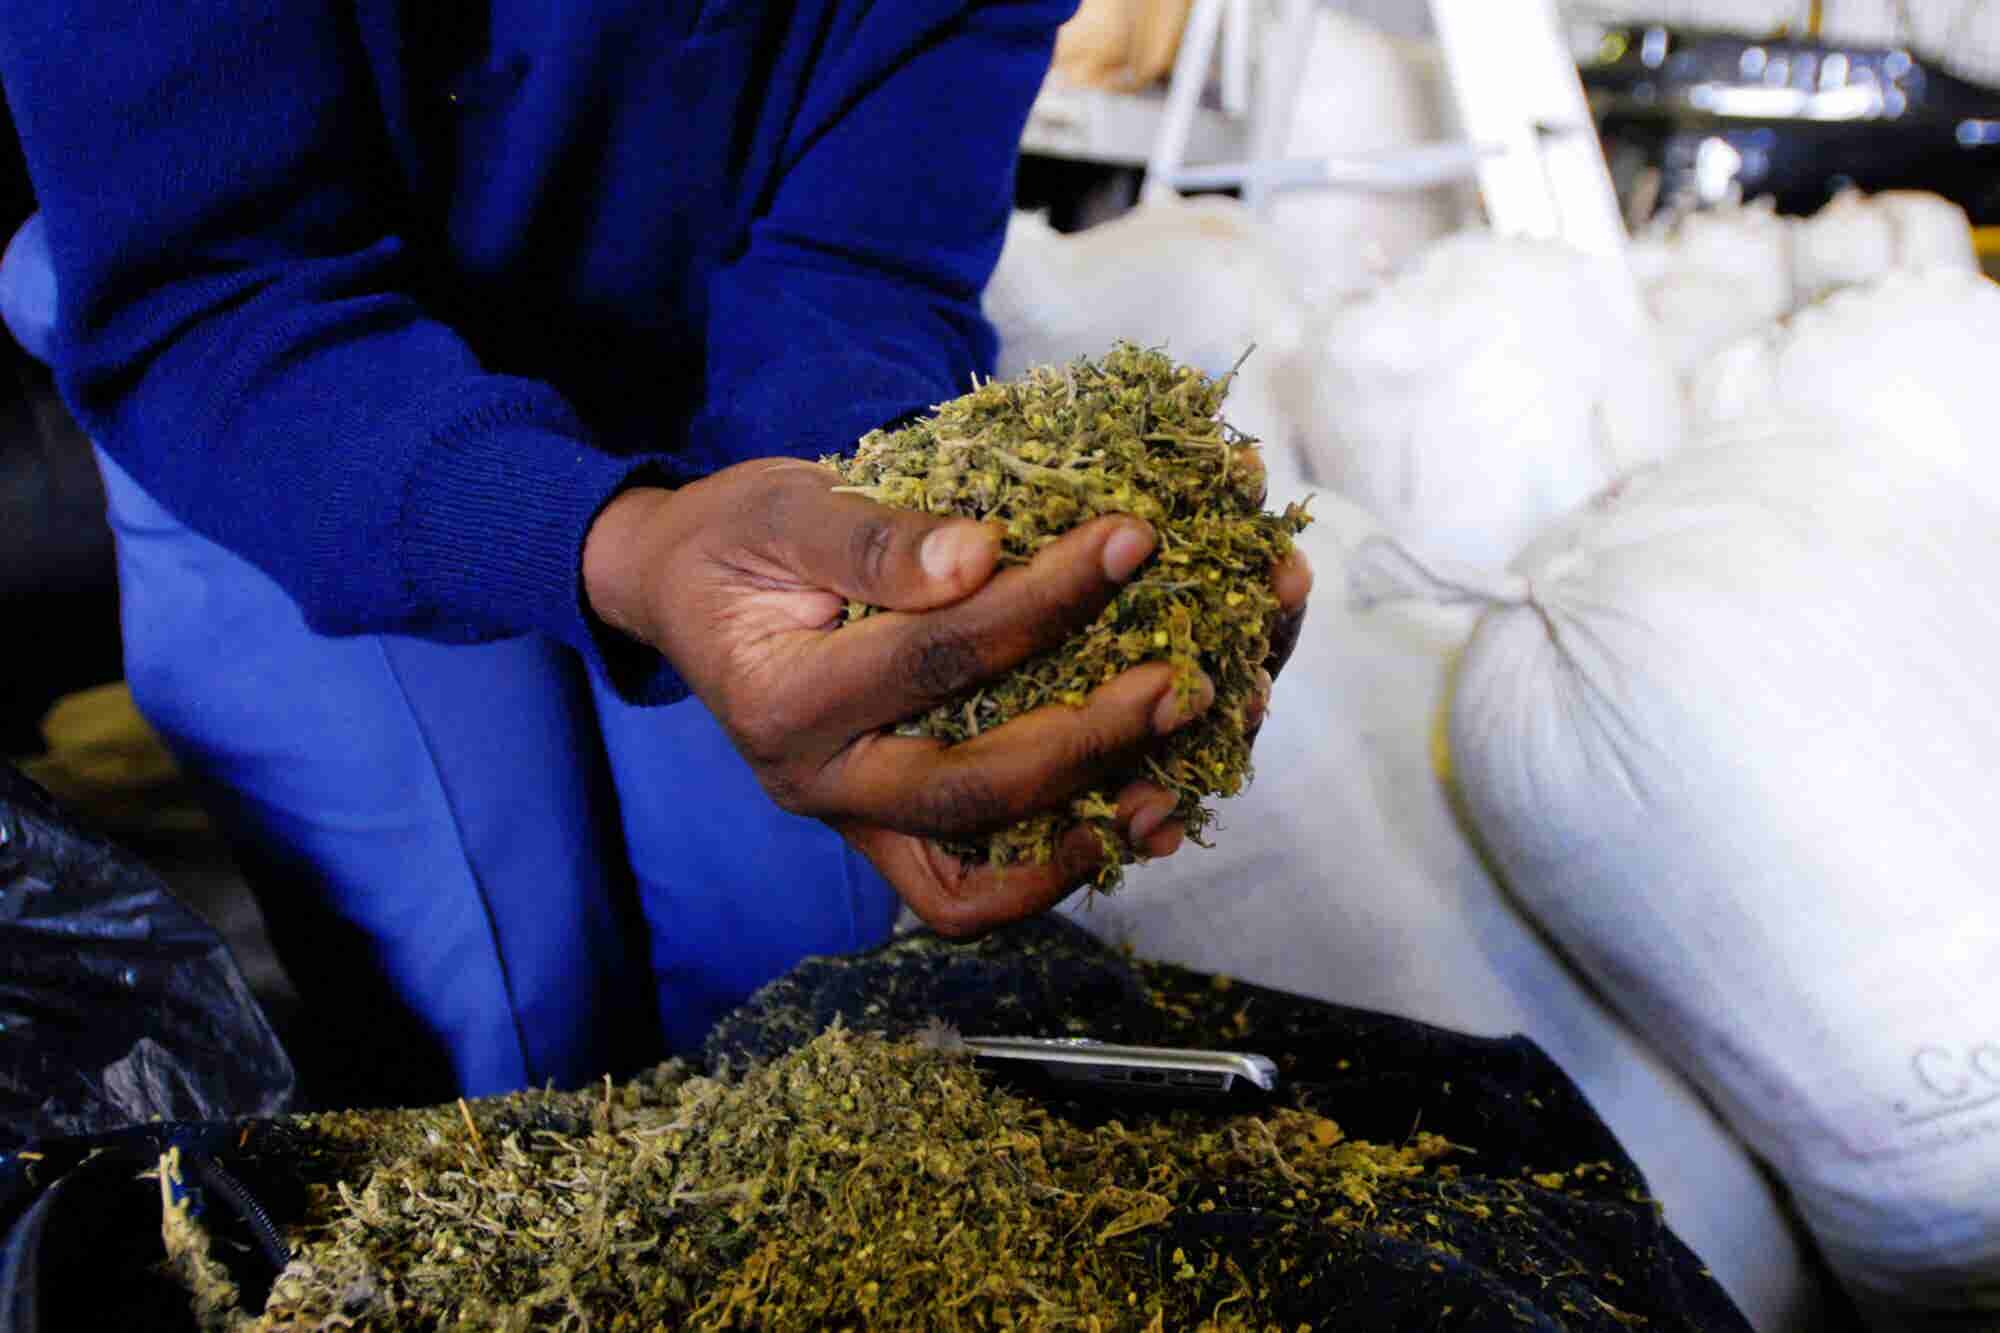 The African Cannabis Market Could Reach $7.1B by 2023